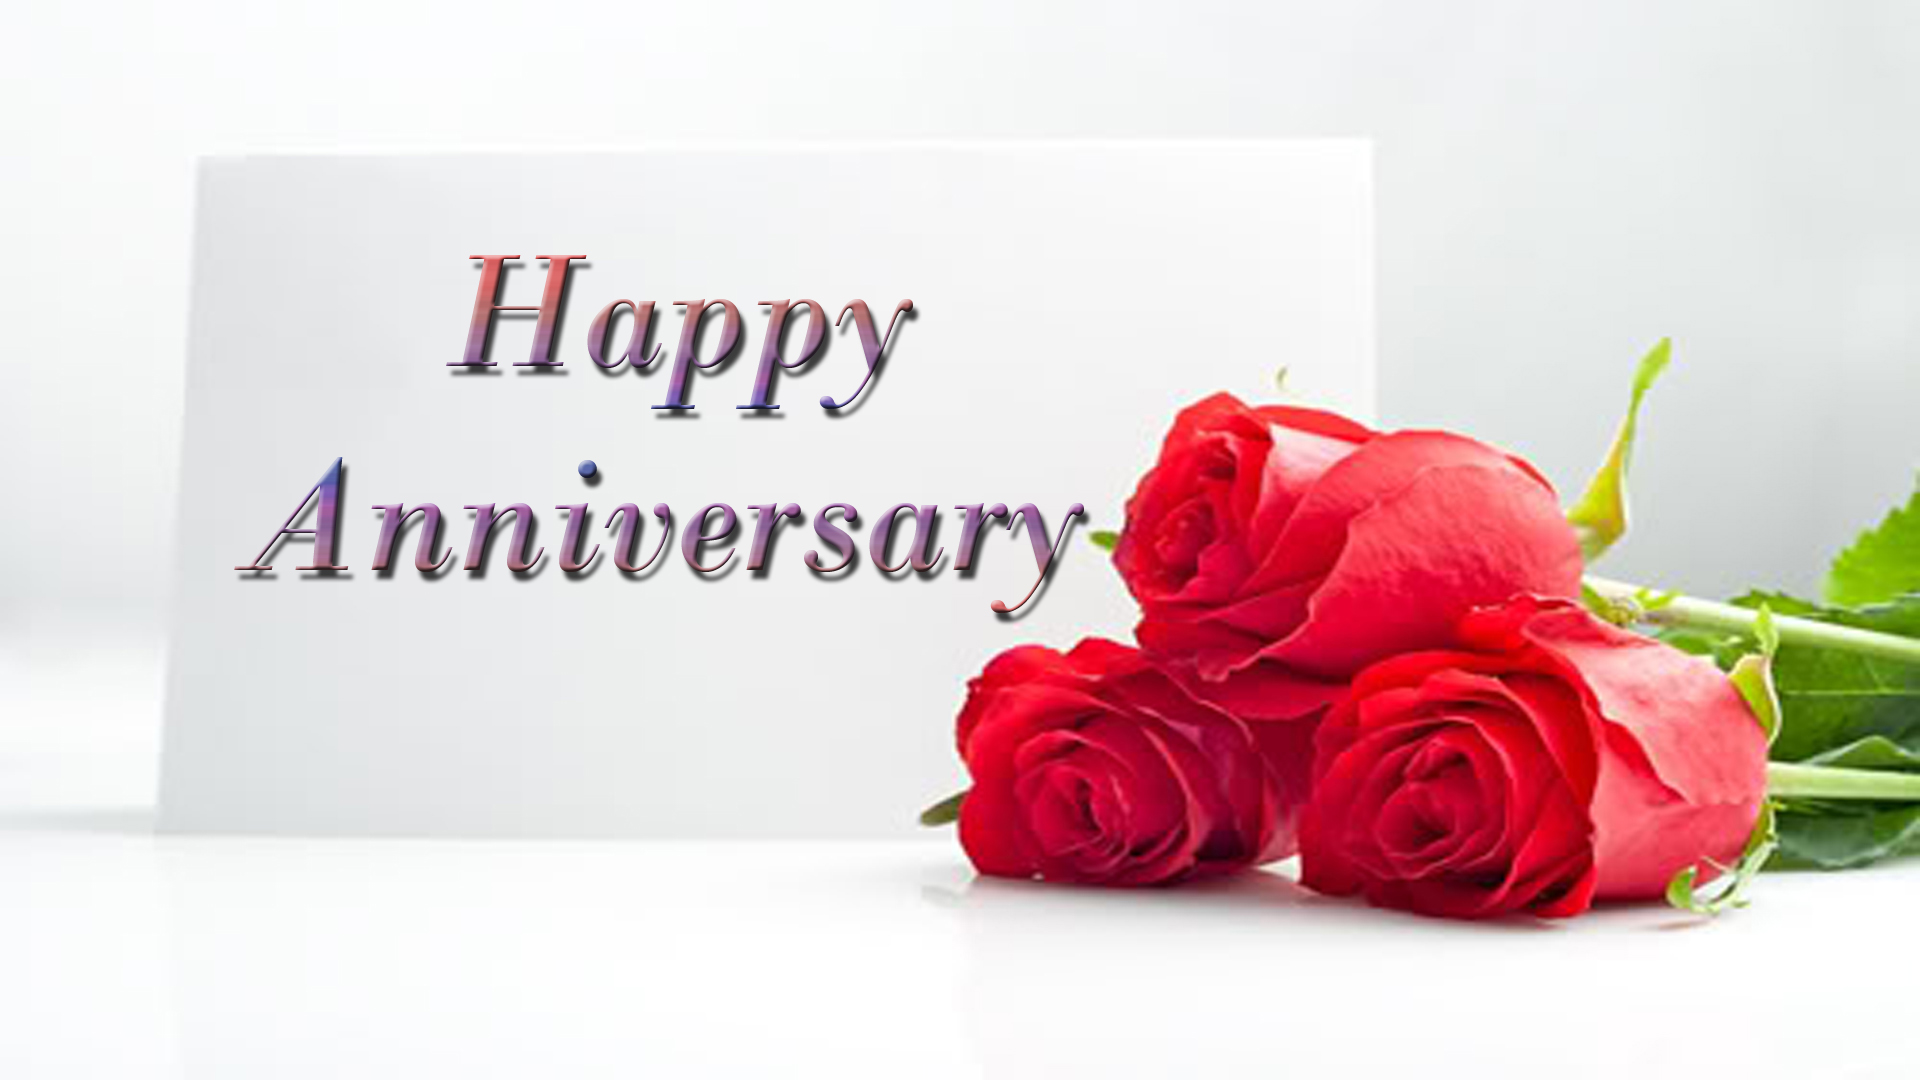 Happy anniversary cards images wedding anniversary wishes